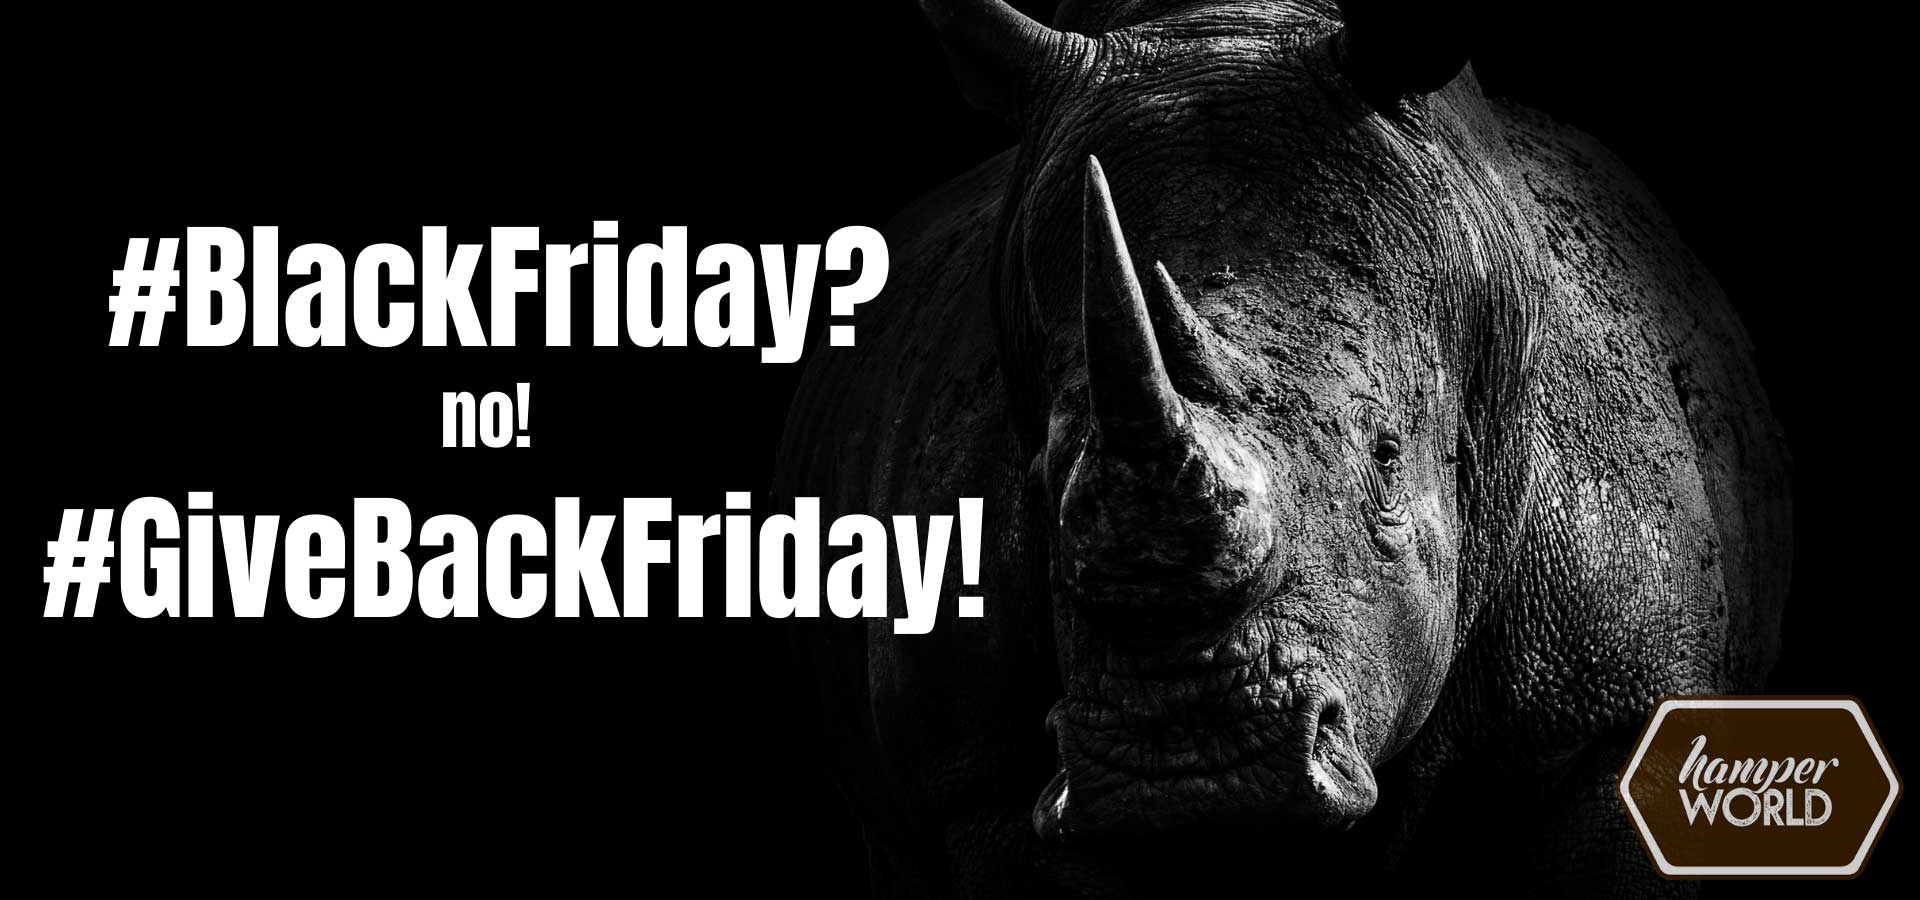 BlackFriday vs GiveBackFriday | Hamper World